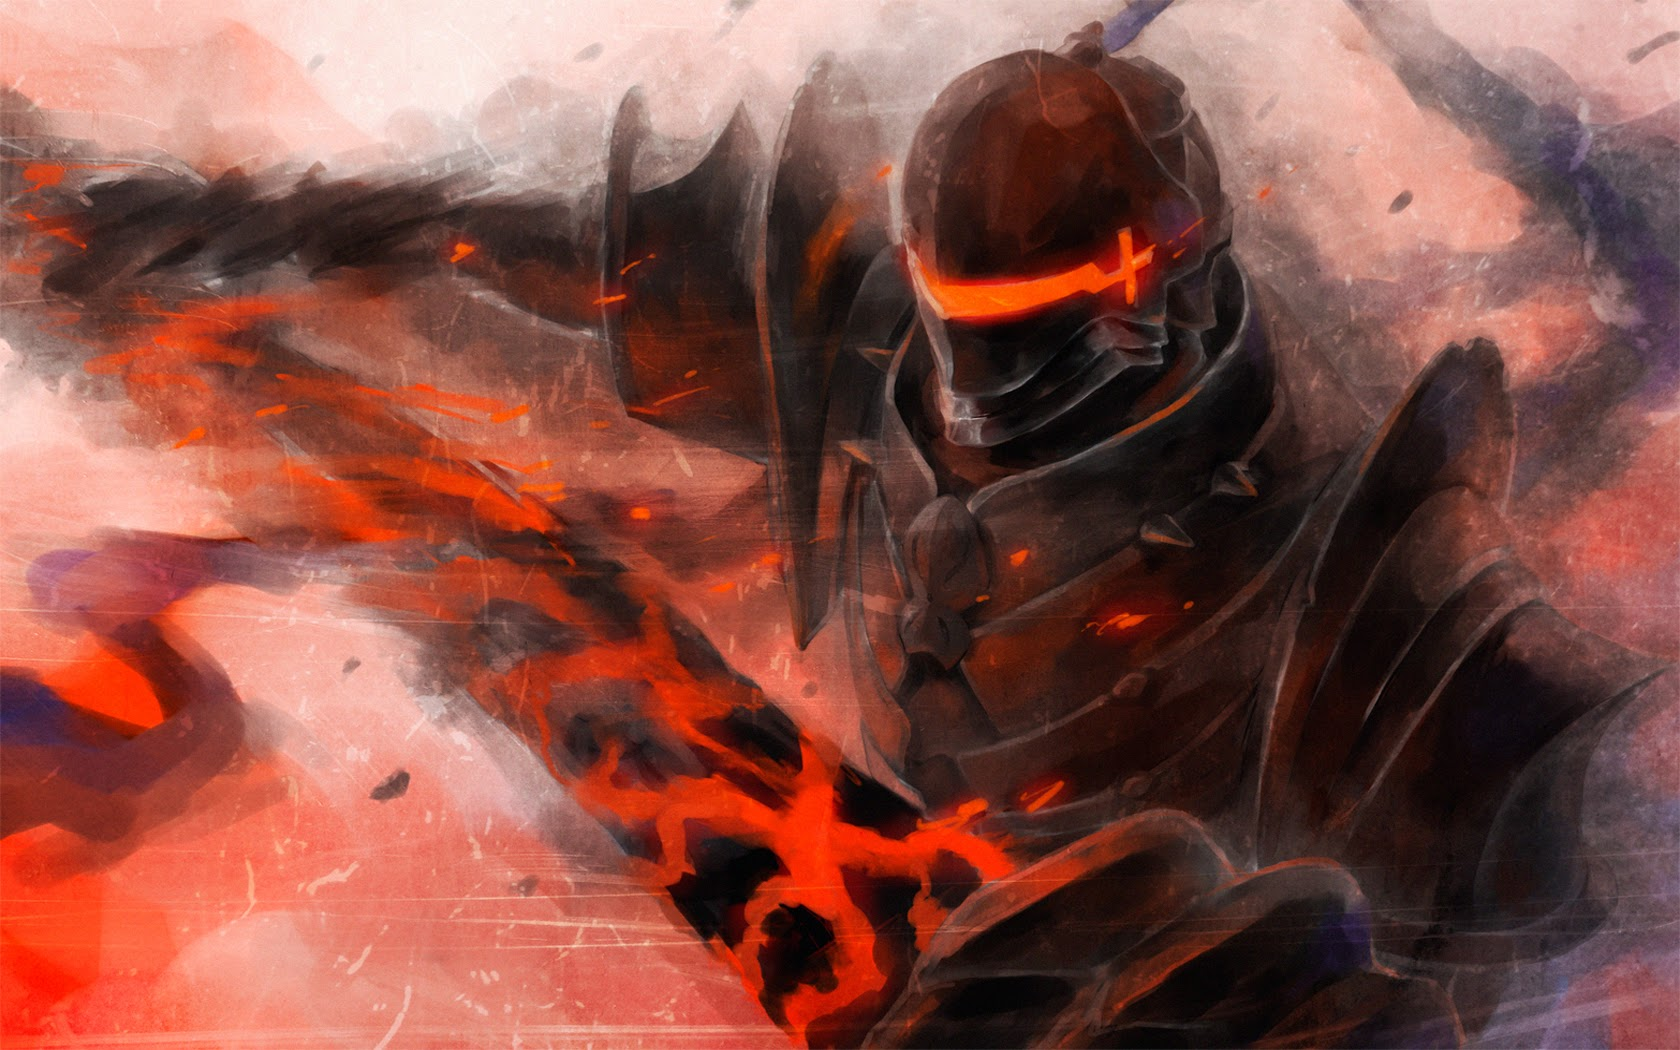 Berserker-fate-stay-night-wallpaper-anime-hd-black-armor-knight-1680x1050.jpg